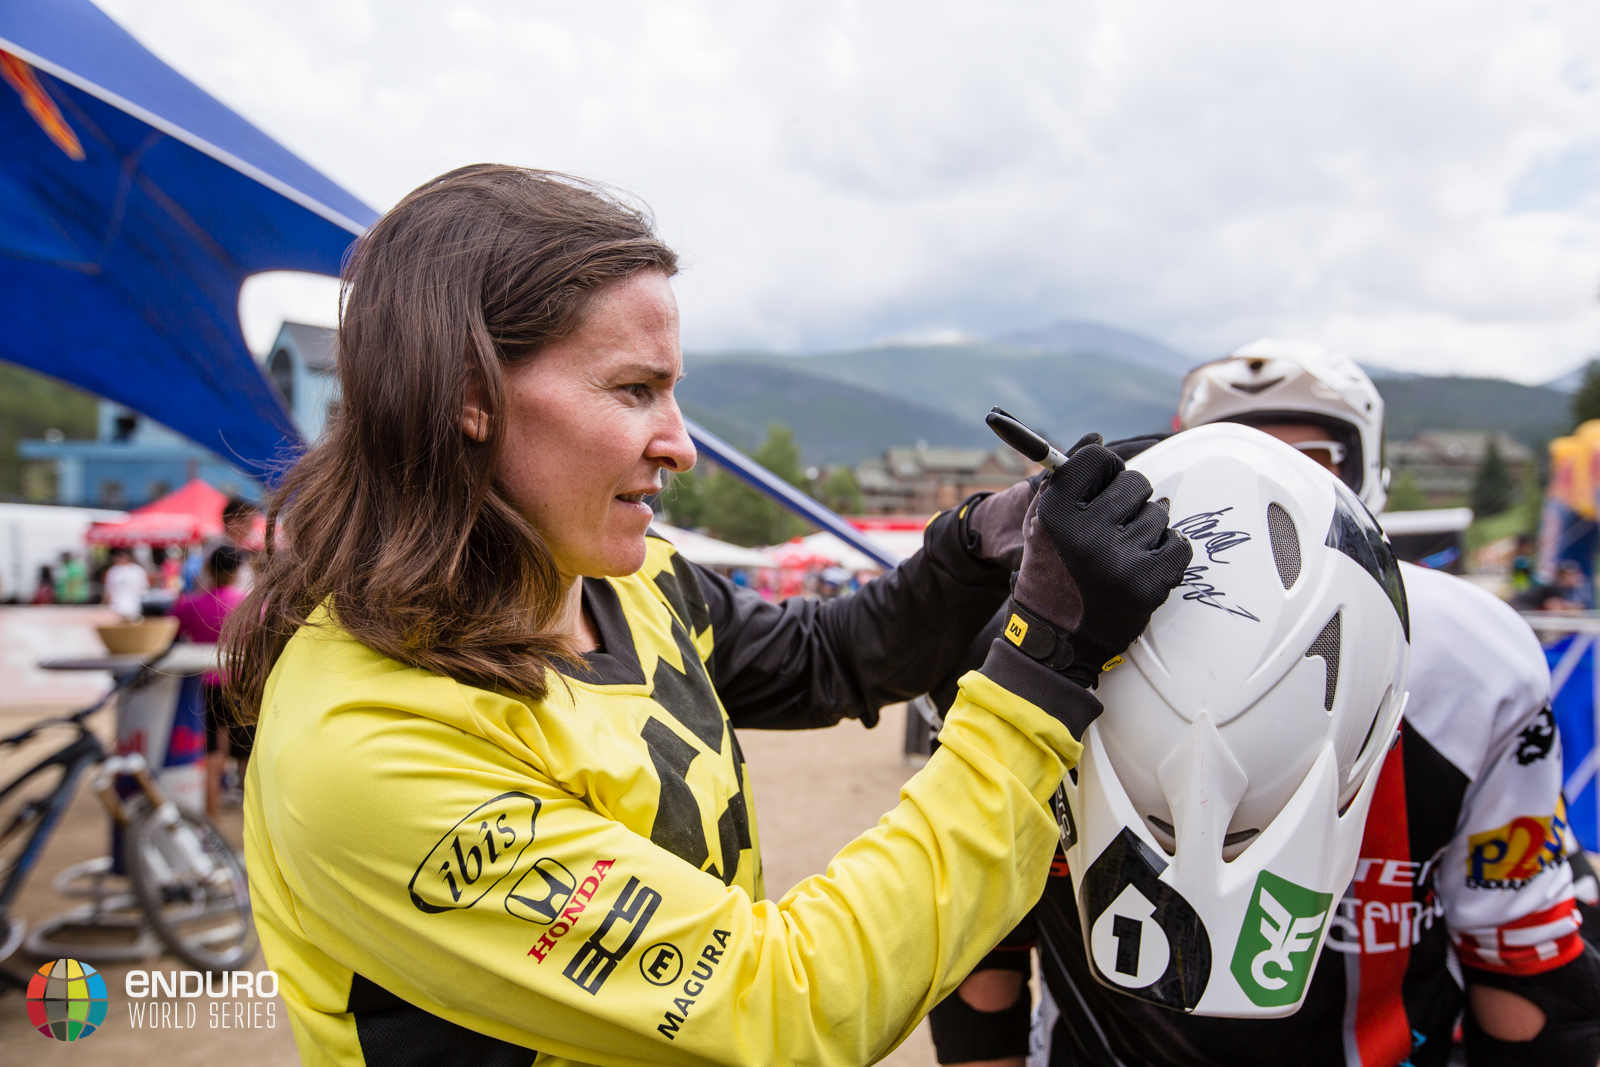 Anne-Caroline Chausson signs an autograph for a fan. EWS 5 2014 Winter Park. Photo by Matt Wragg